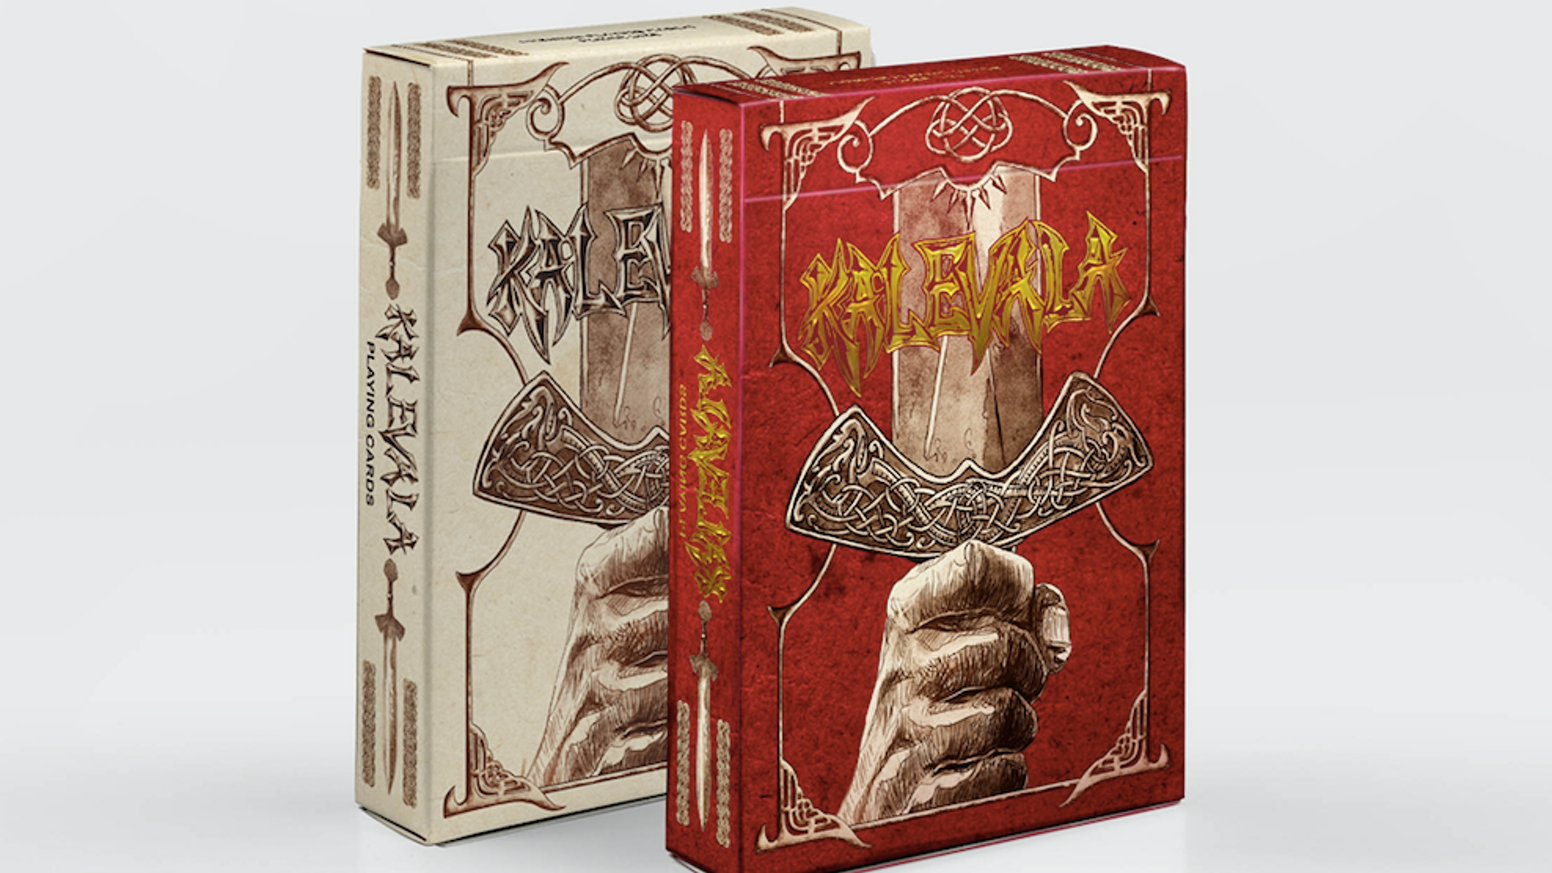 Hand-drawn set of playing cards based on the Kalevala, the epic poem of Finland & Karelia